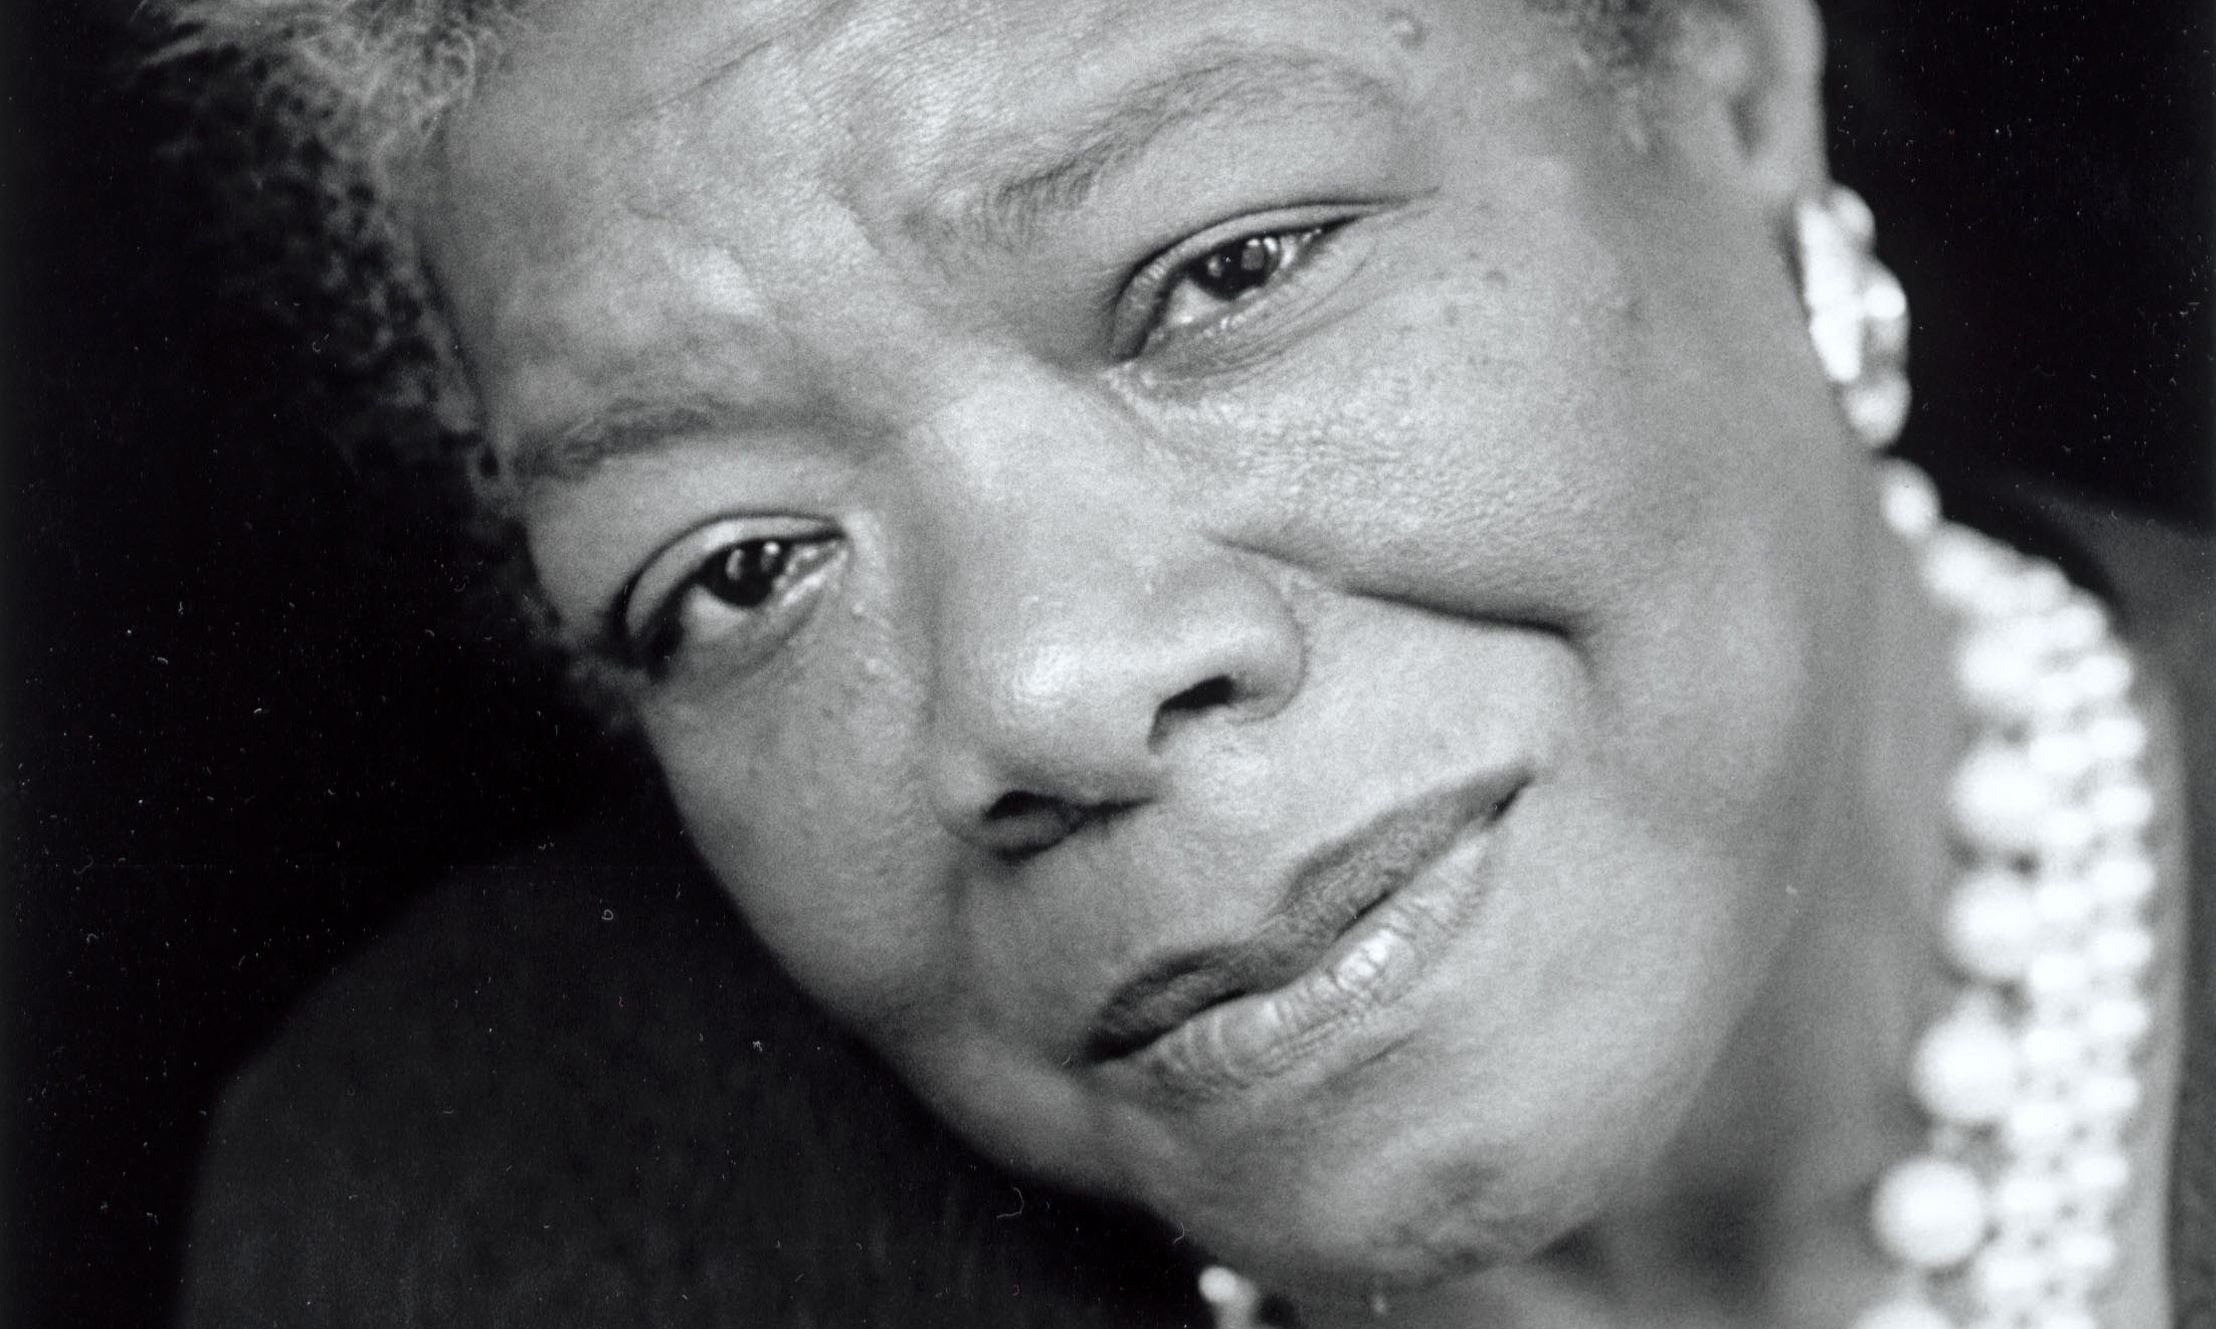 alice walker maya angelou Expect nothing by alice walker alice, you have brought in maya angelou still i rise maya angelou the road not taken robert frost if you forget me.